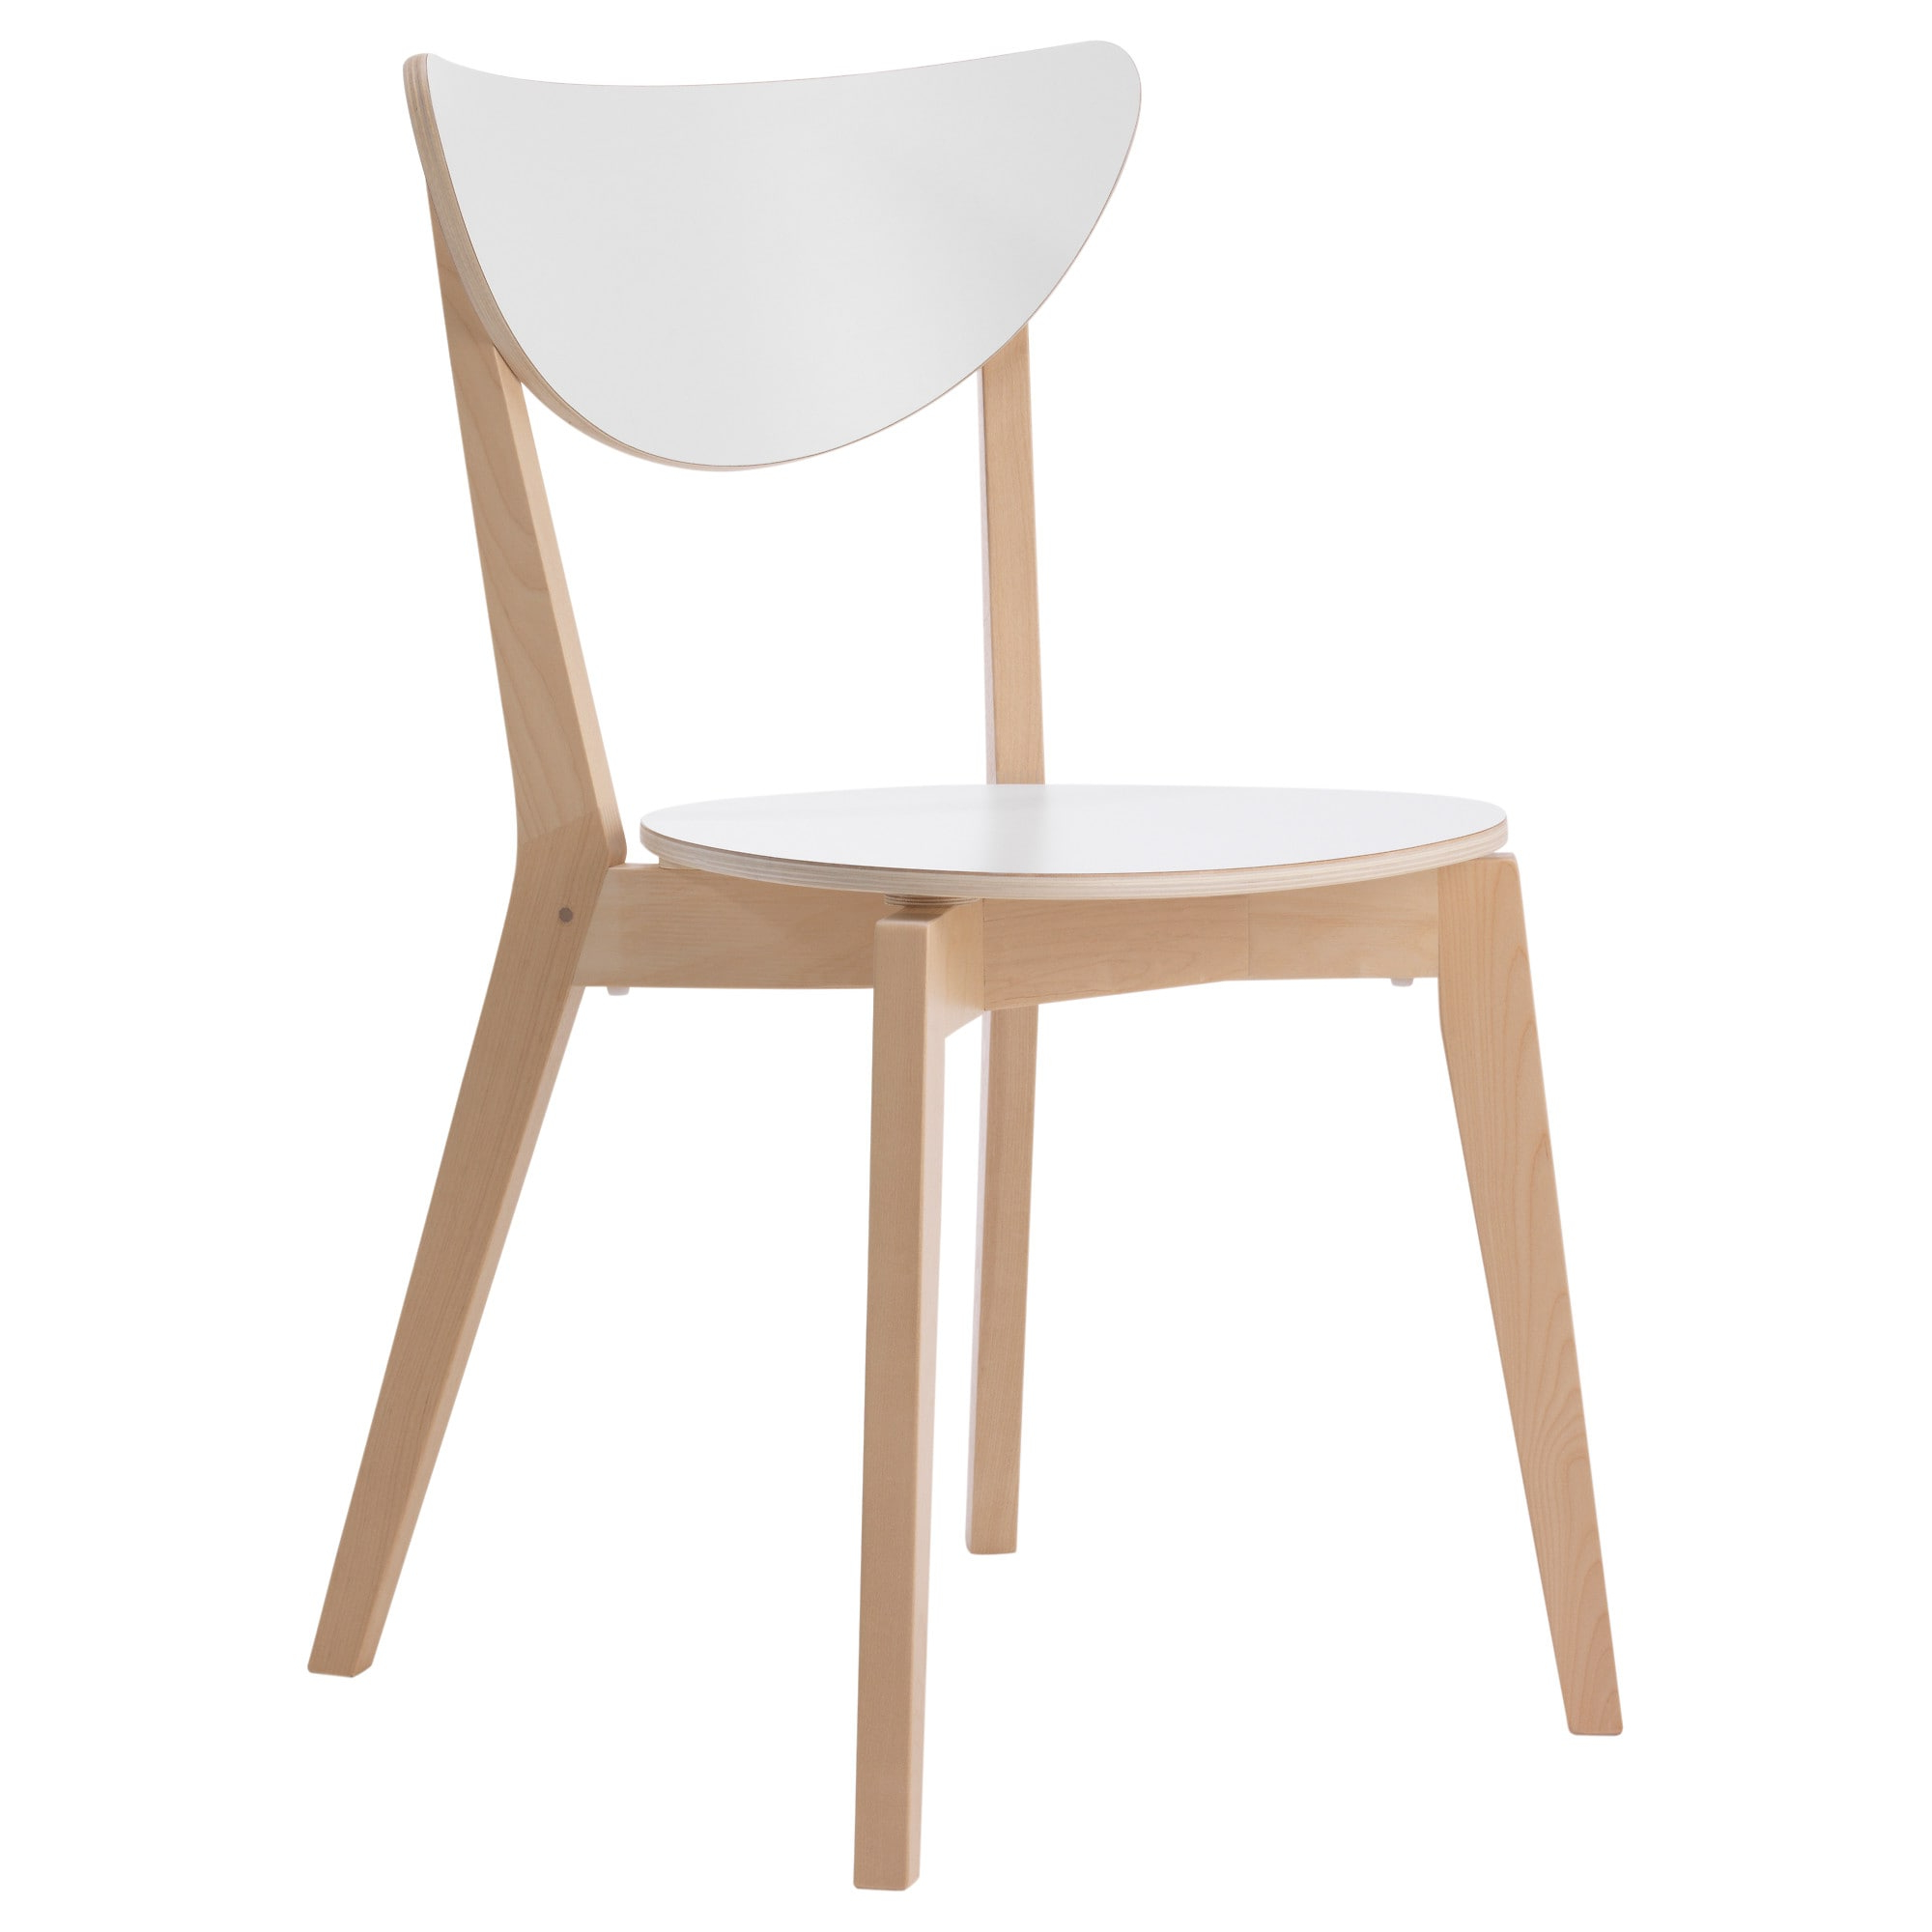 Ikea Sillas Cocina Q5df nordmyra Chair White Birch Ikea